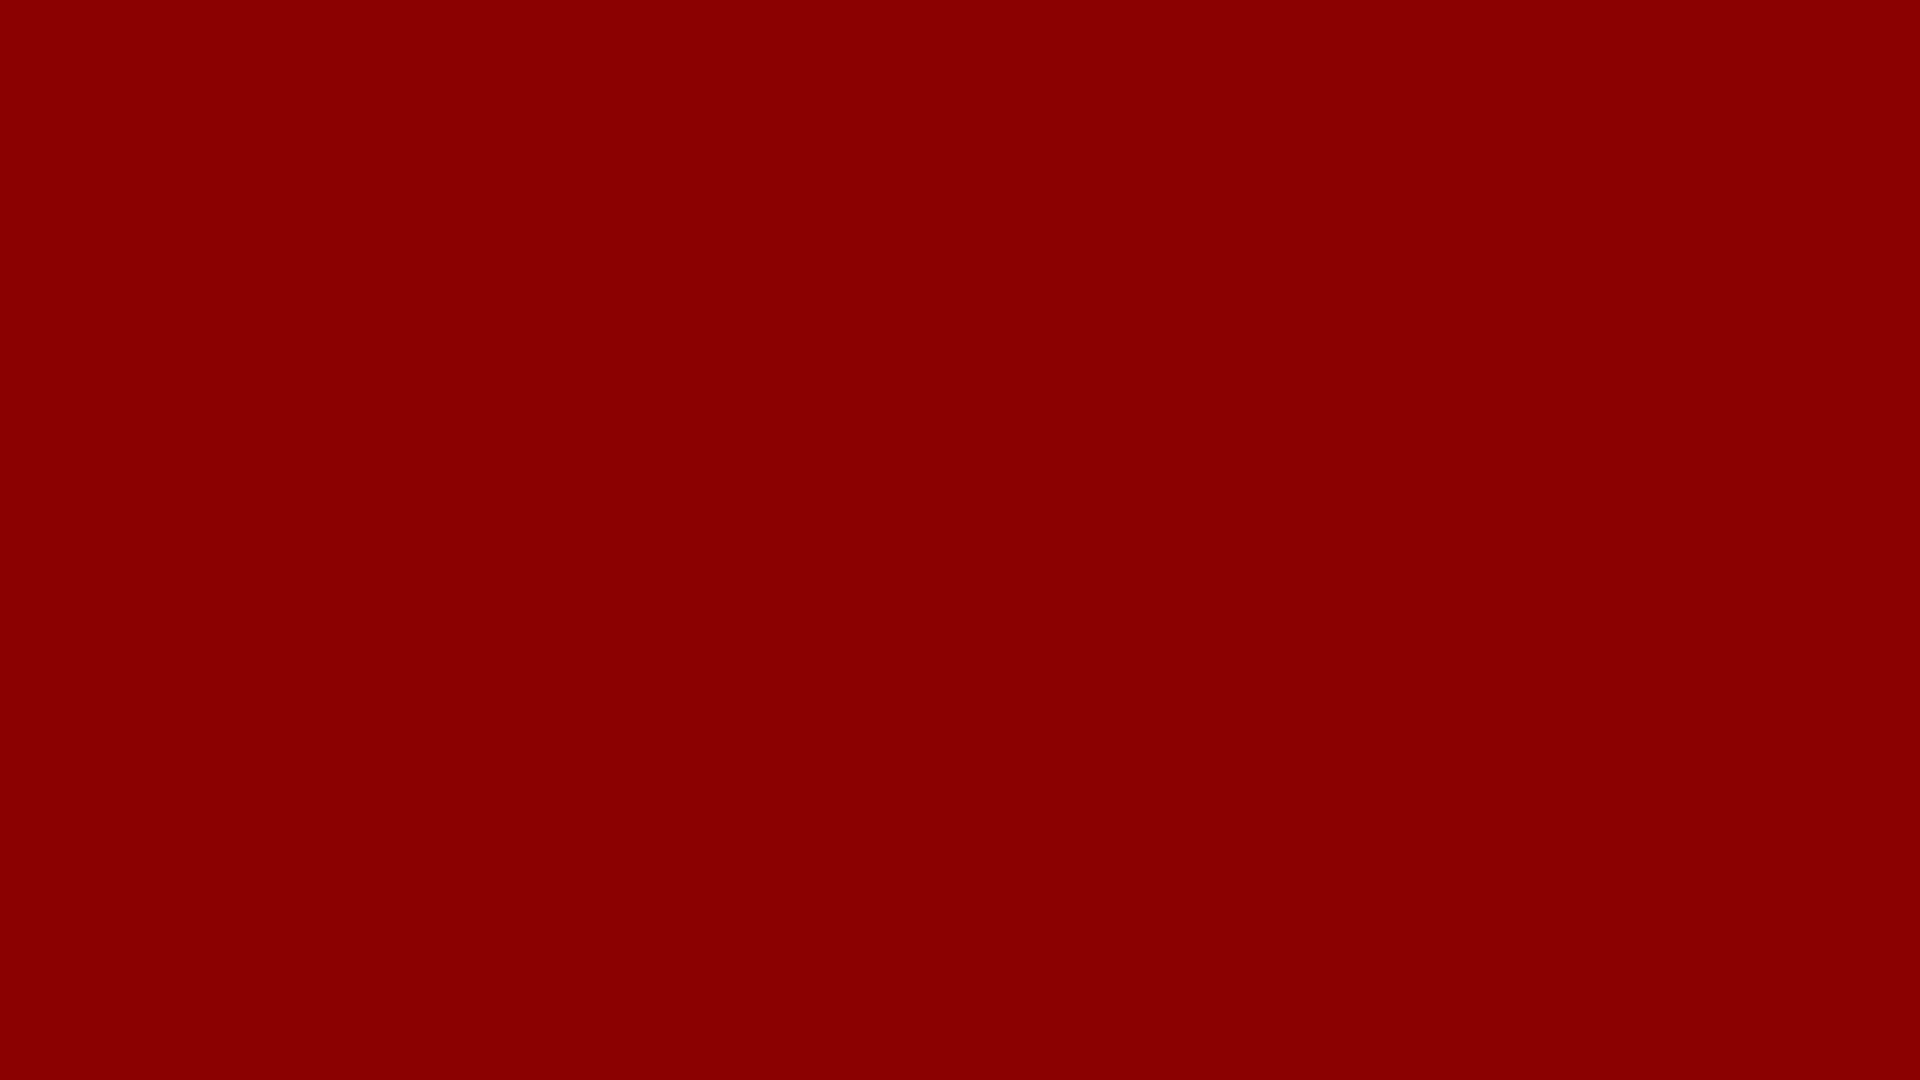 red color background hd - photo #42